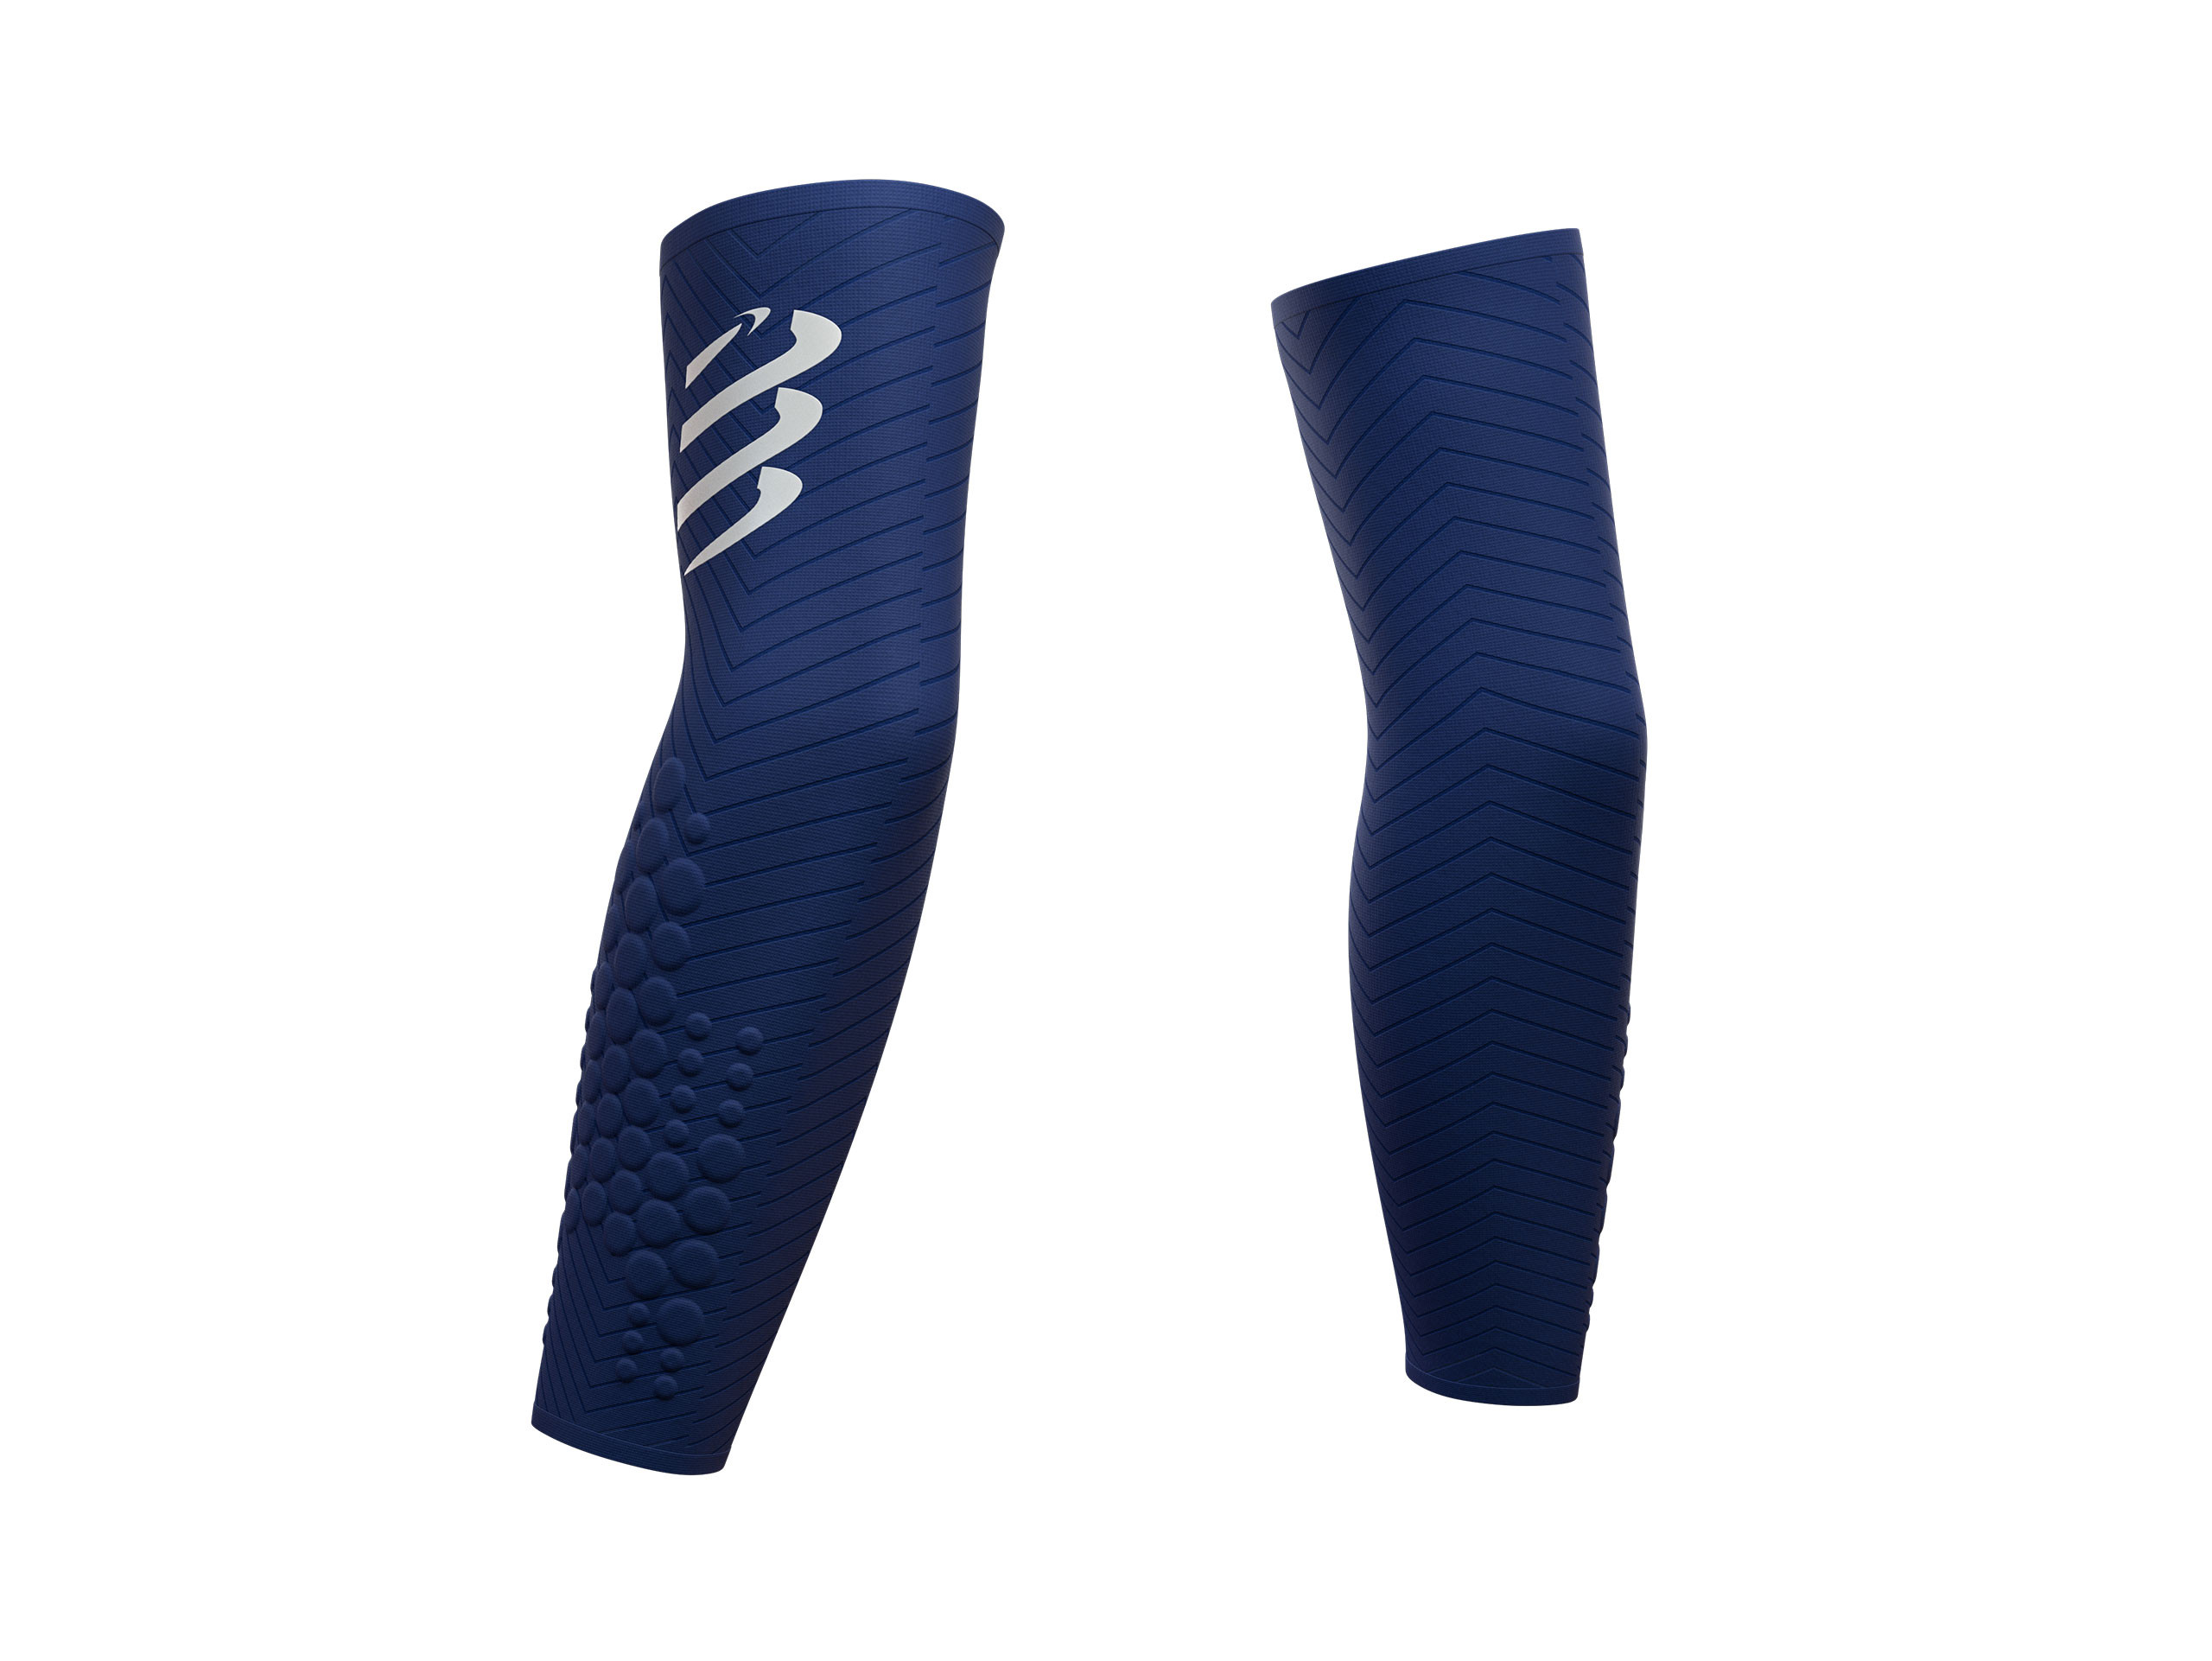 ArmForce Ultralight - UTMB 2019 BLUE